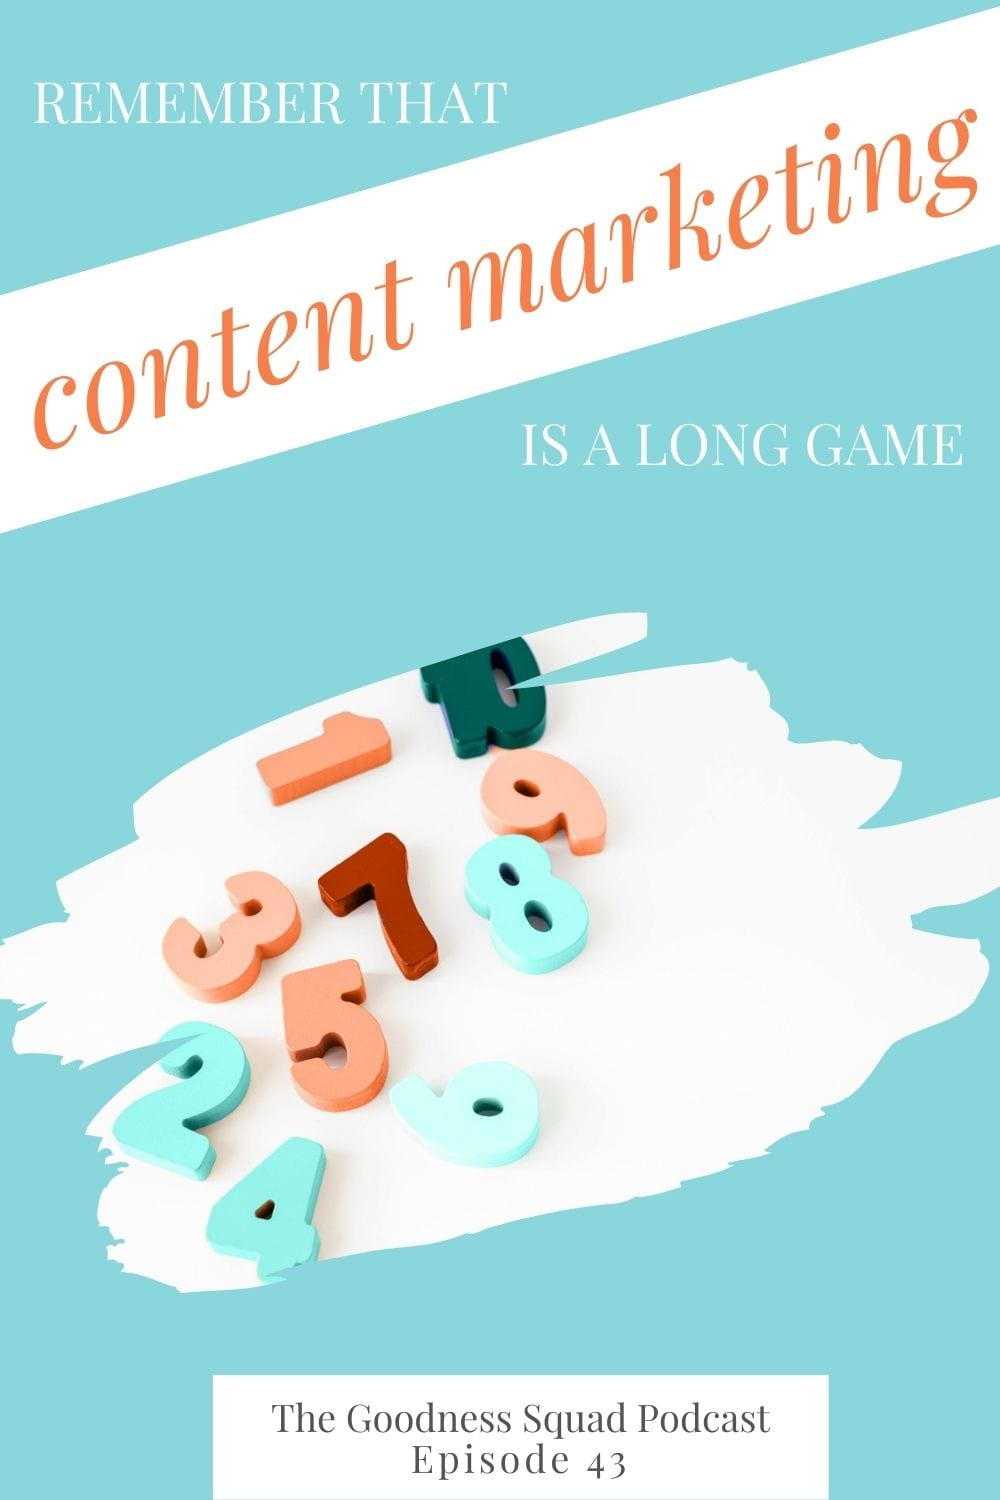 043_Remember that content marketing is a long game with joy from play with joy